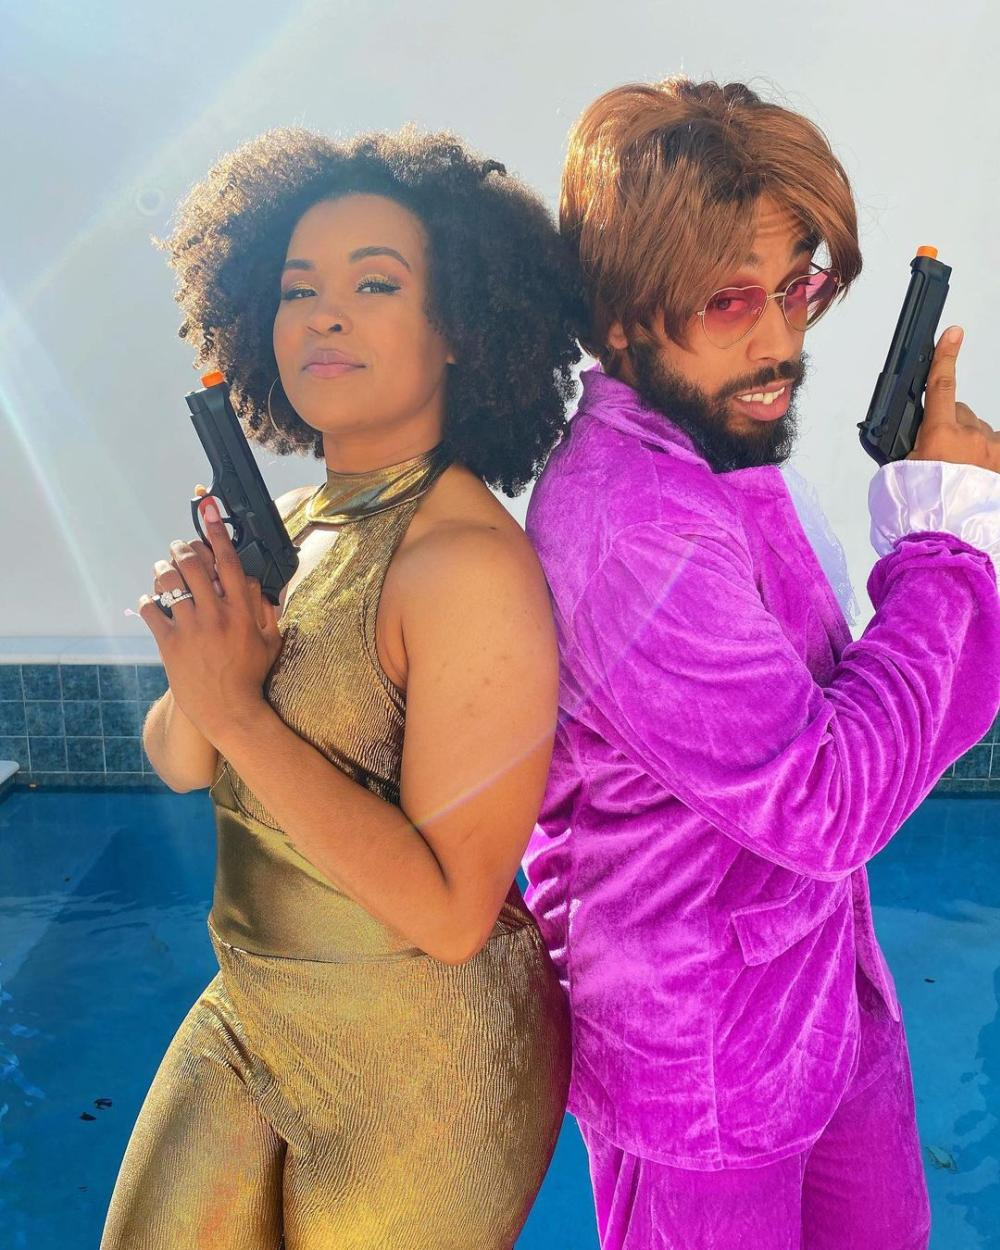 Austin Powers and Foxxy Cleopatra Couple Costume Ideas